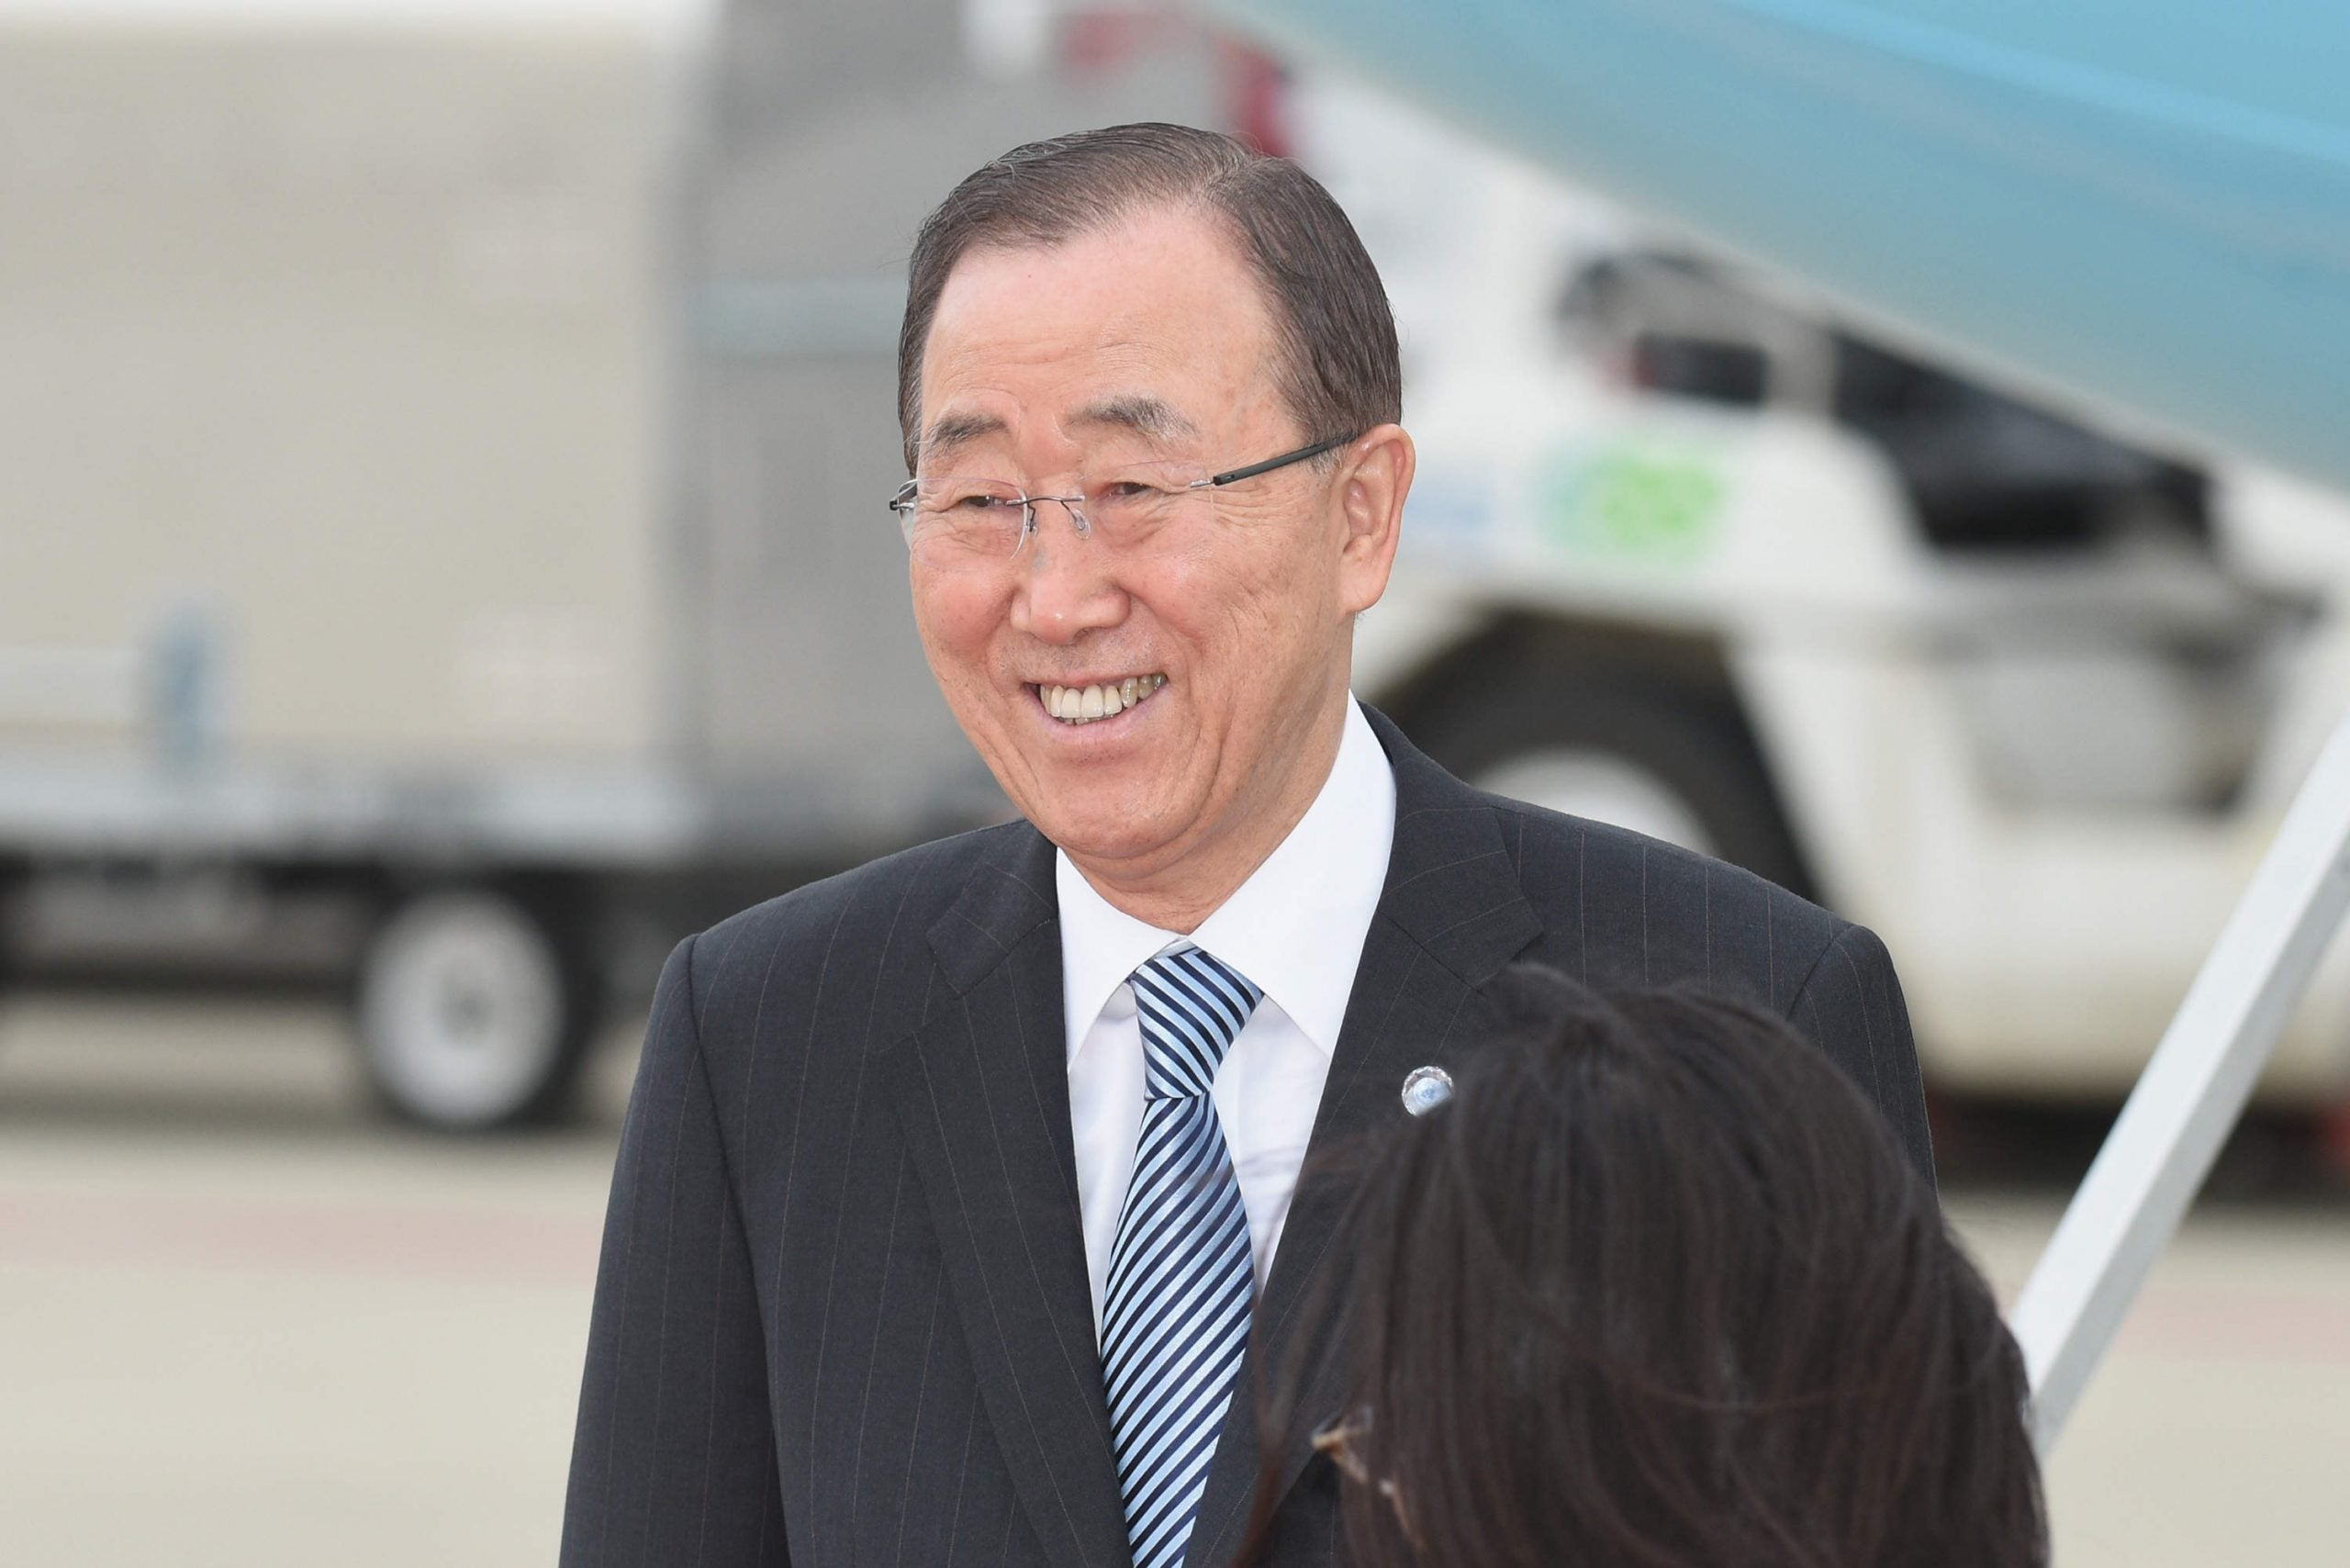 There are sinister goings-on in the race to become the UN's next Secretary-General